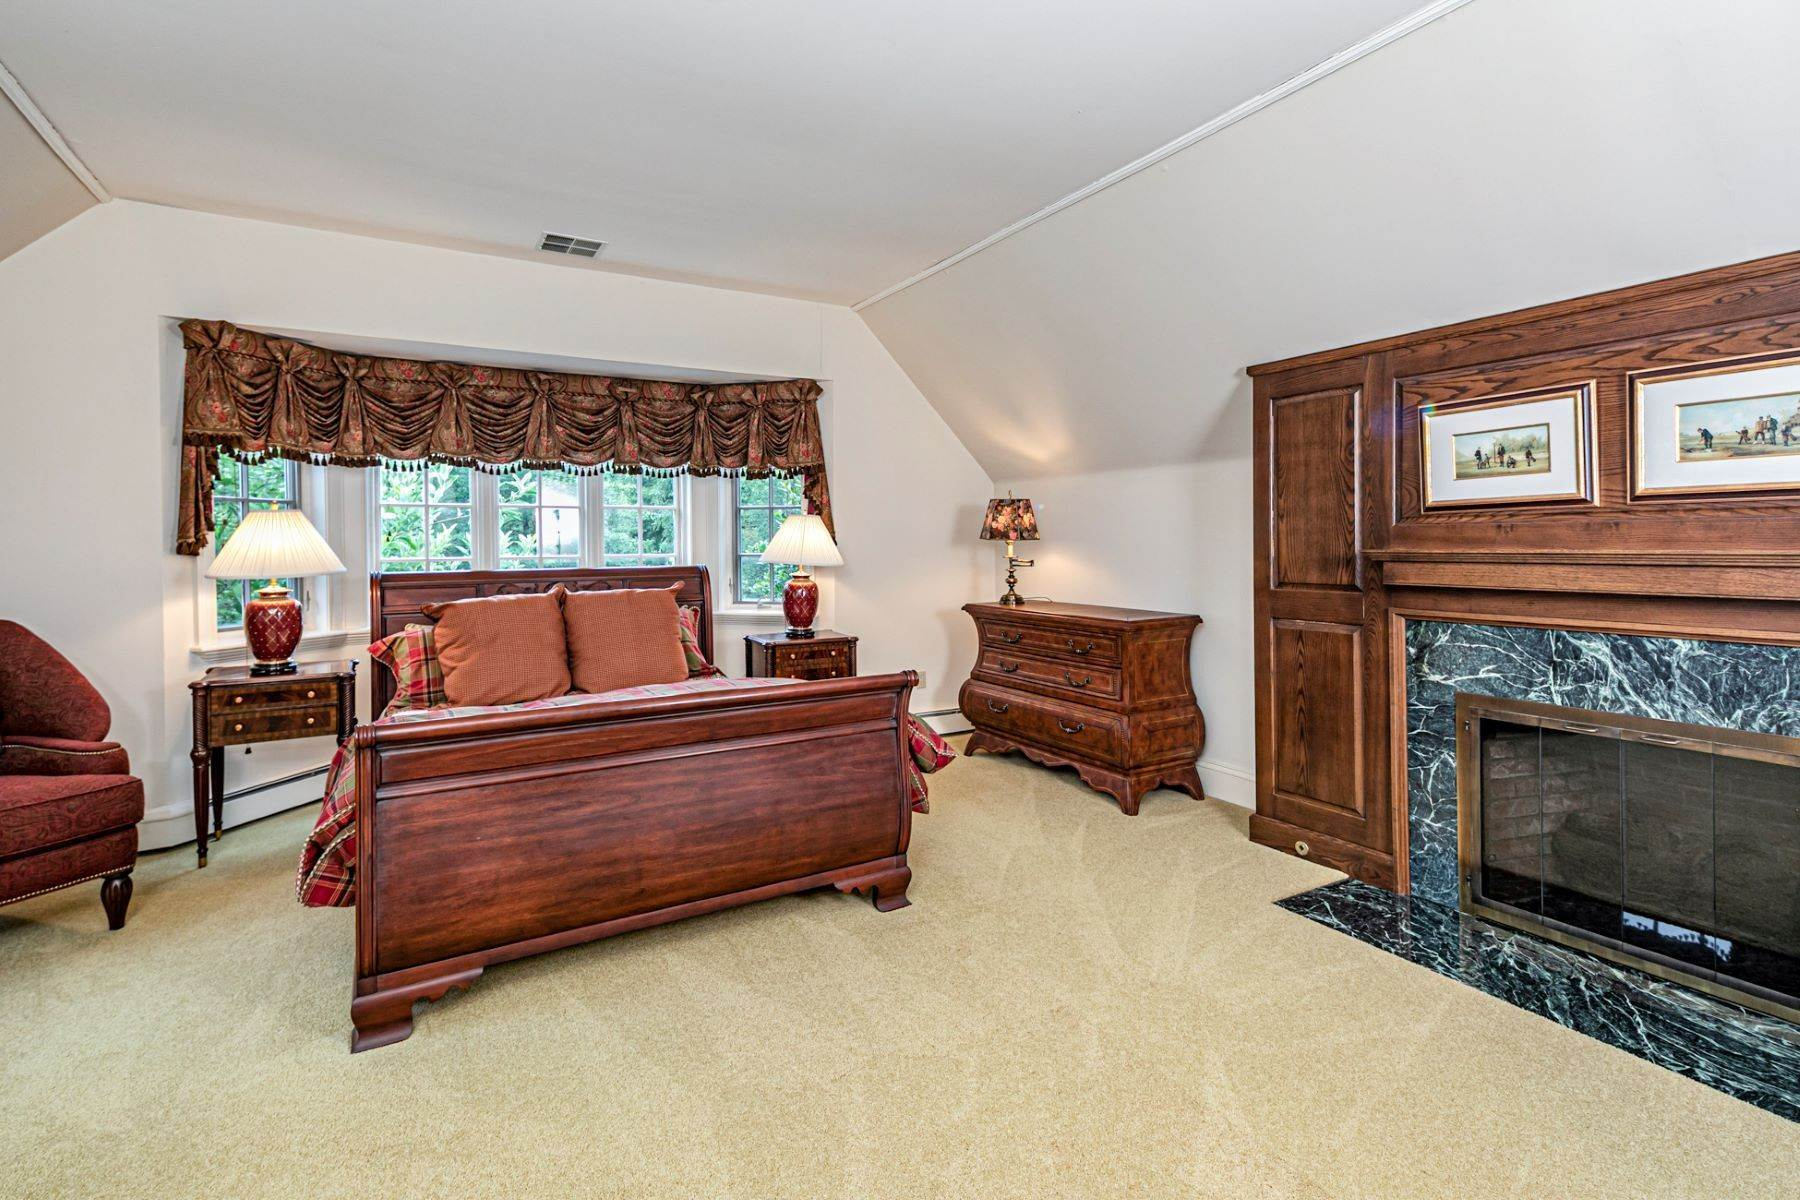 21. Single Family Homes for Sale at Private Compound with Every Amenity Imaginable 82 Aunt Molly Road Hopewell, New Jersey 08525 United States